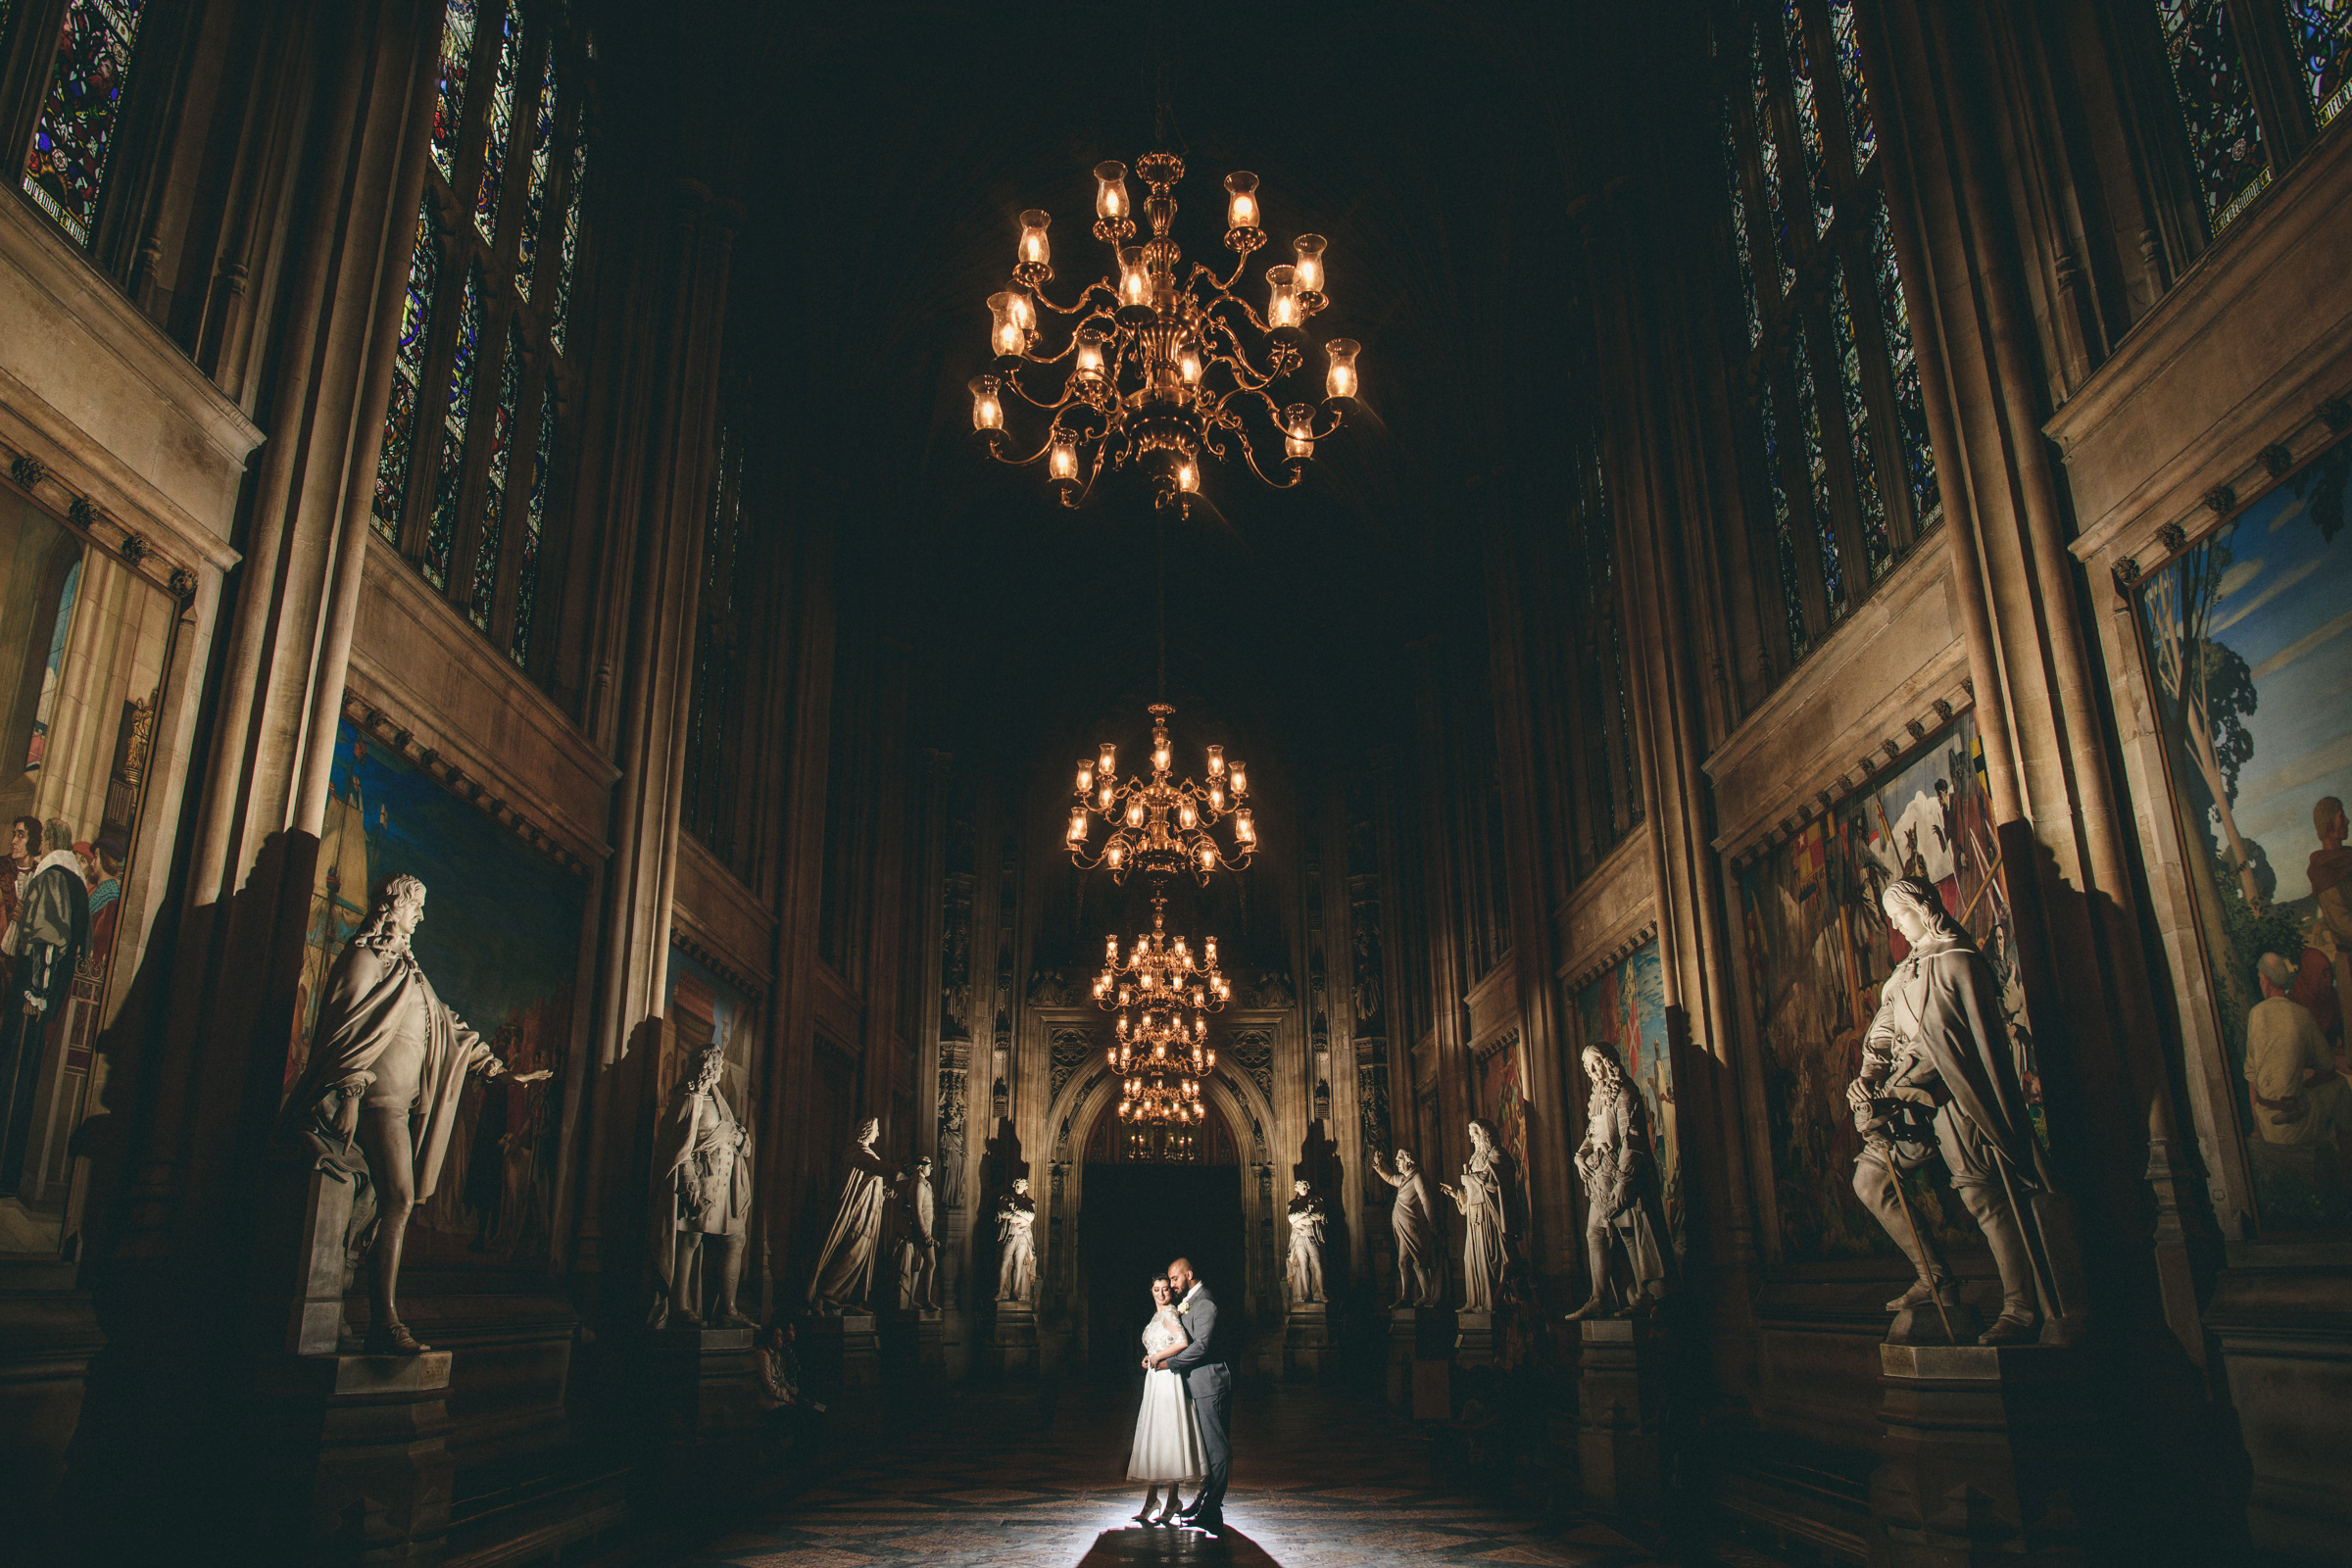 Low light couple portrait in museum setting with sculptures and chandeliers - photo by MIKI Studios